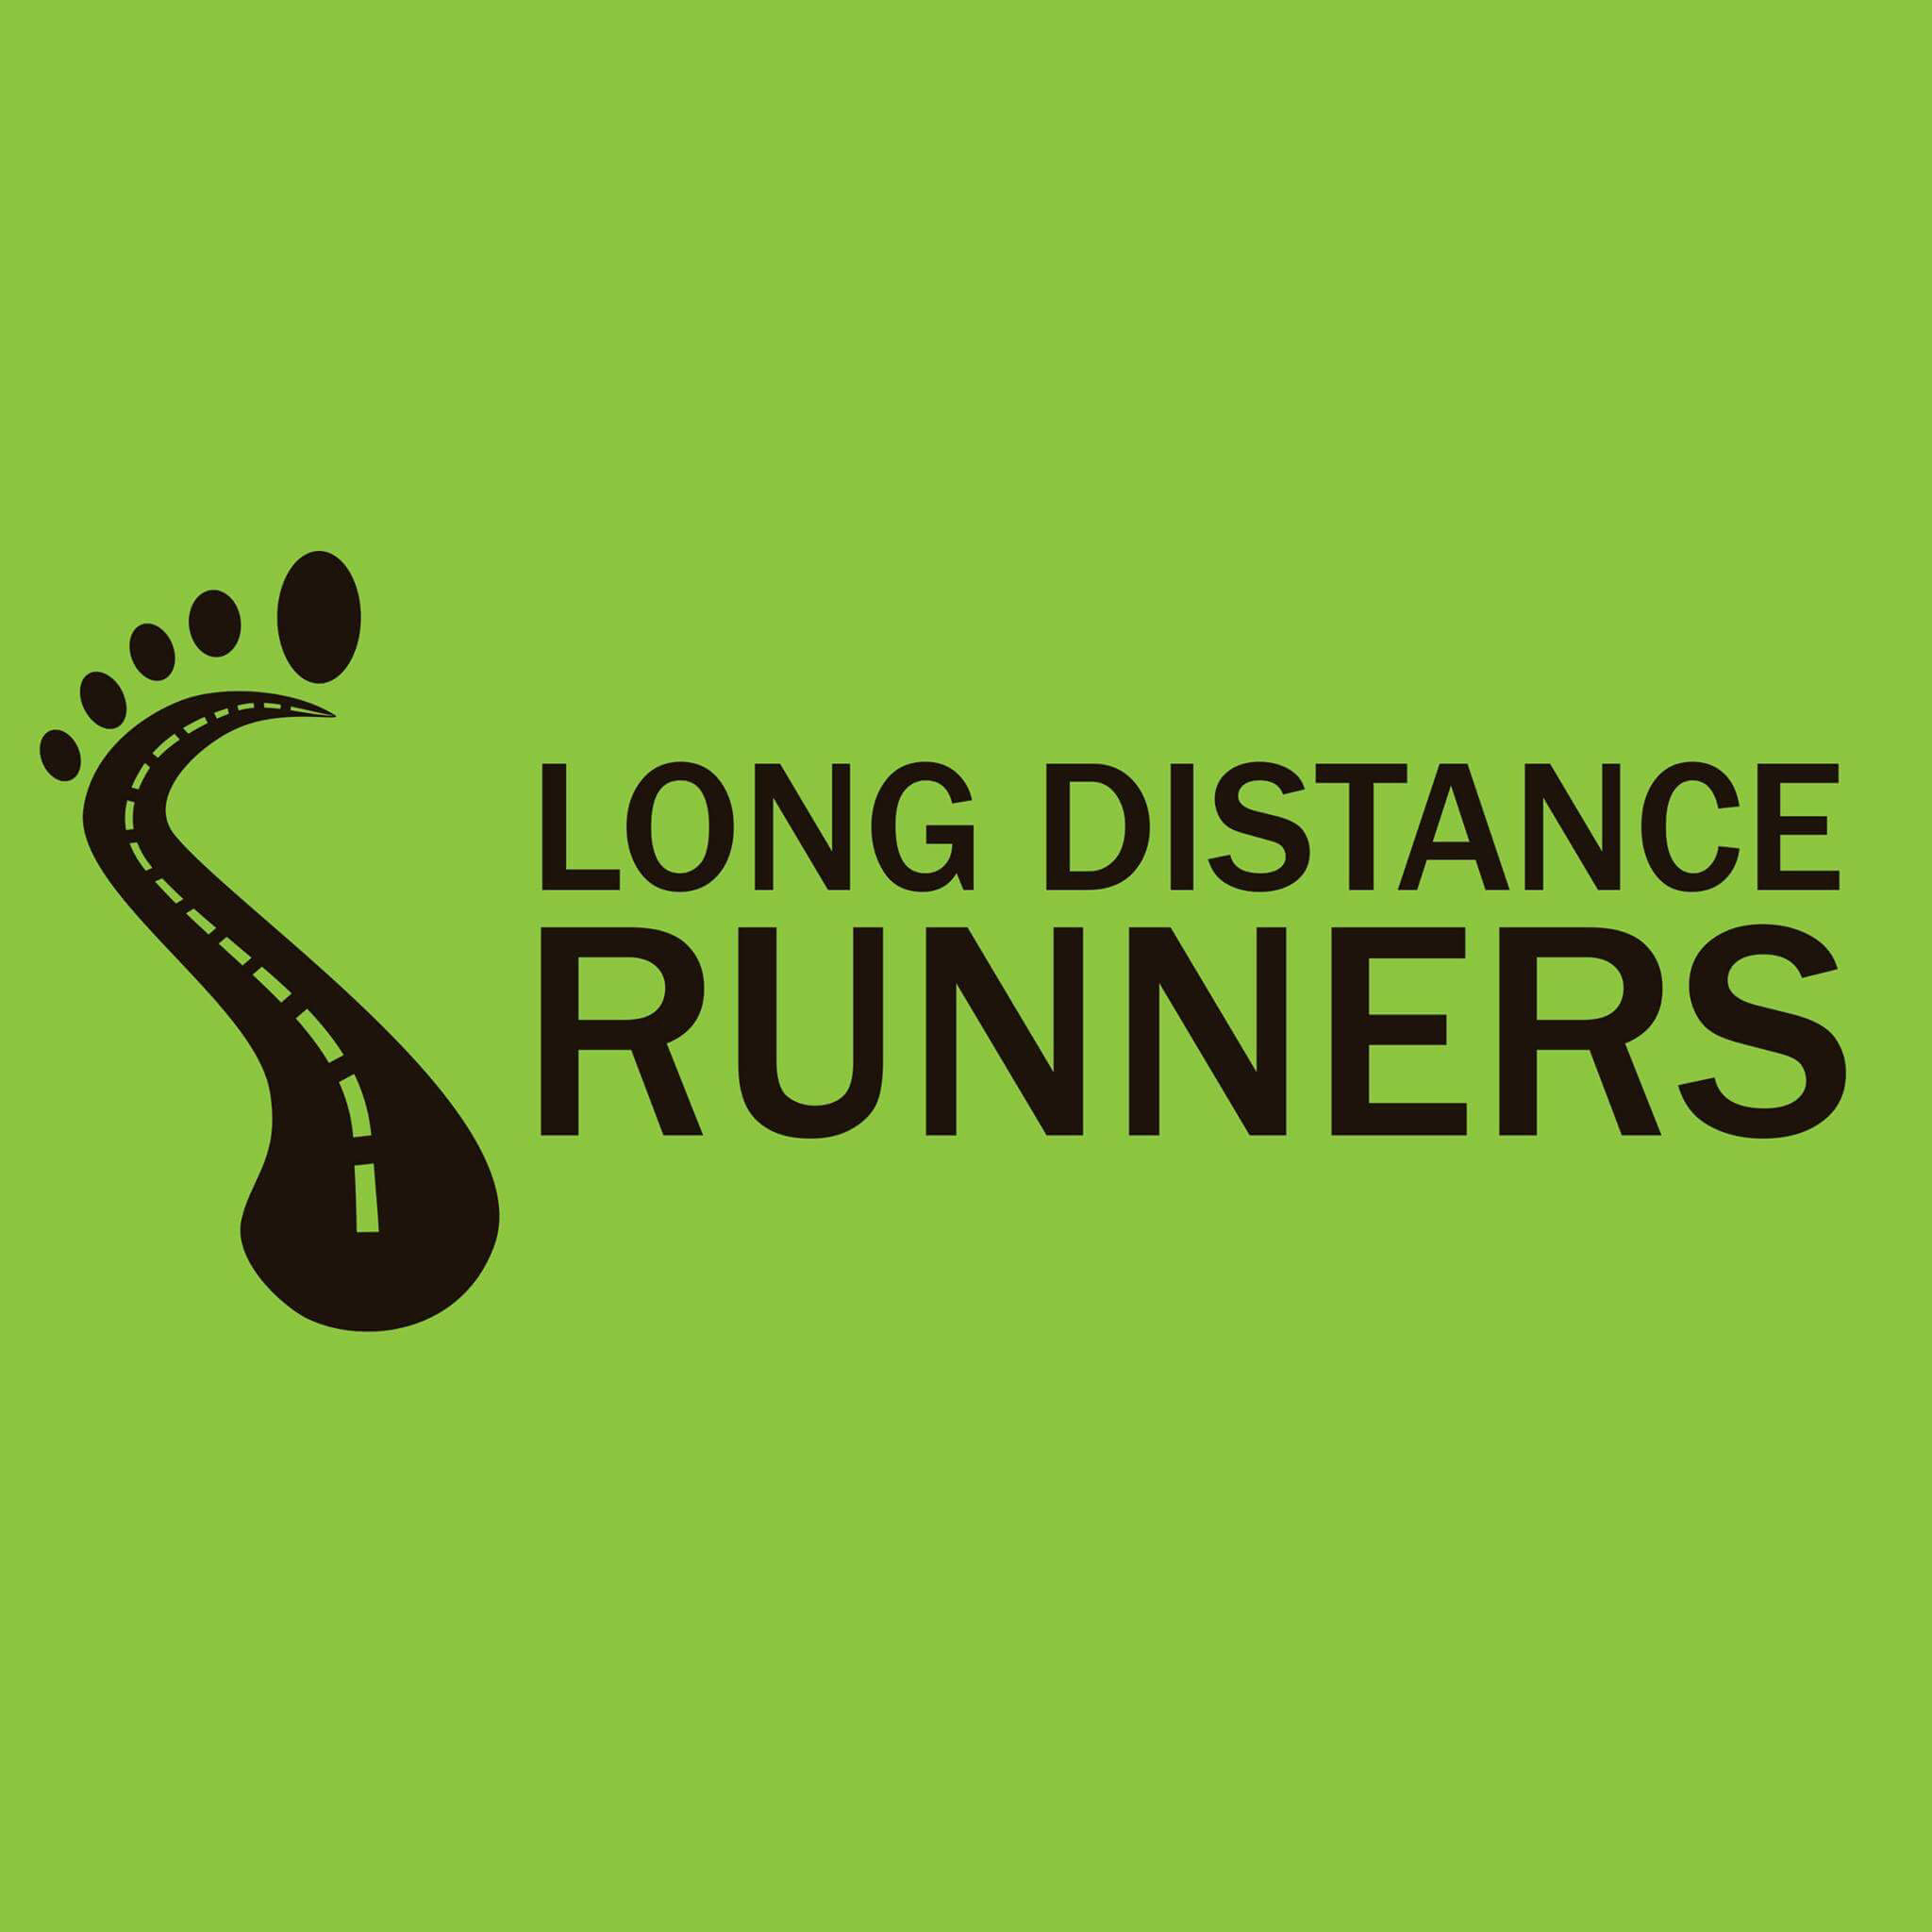 LDR - Long Distance Runners